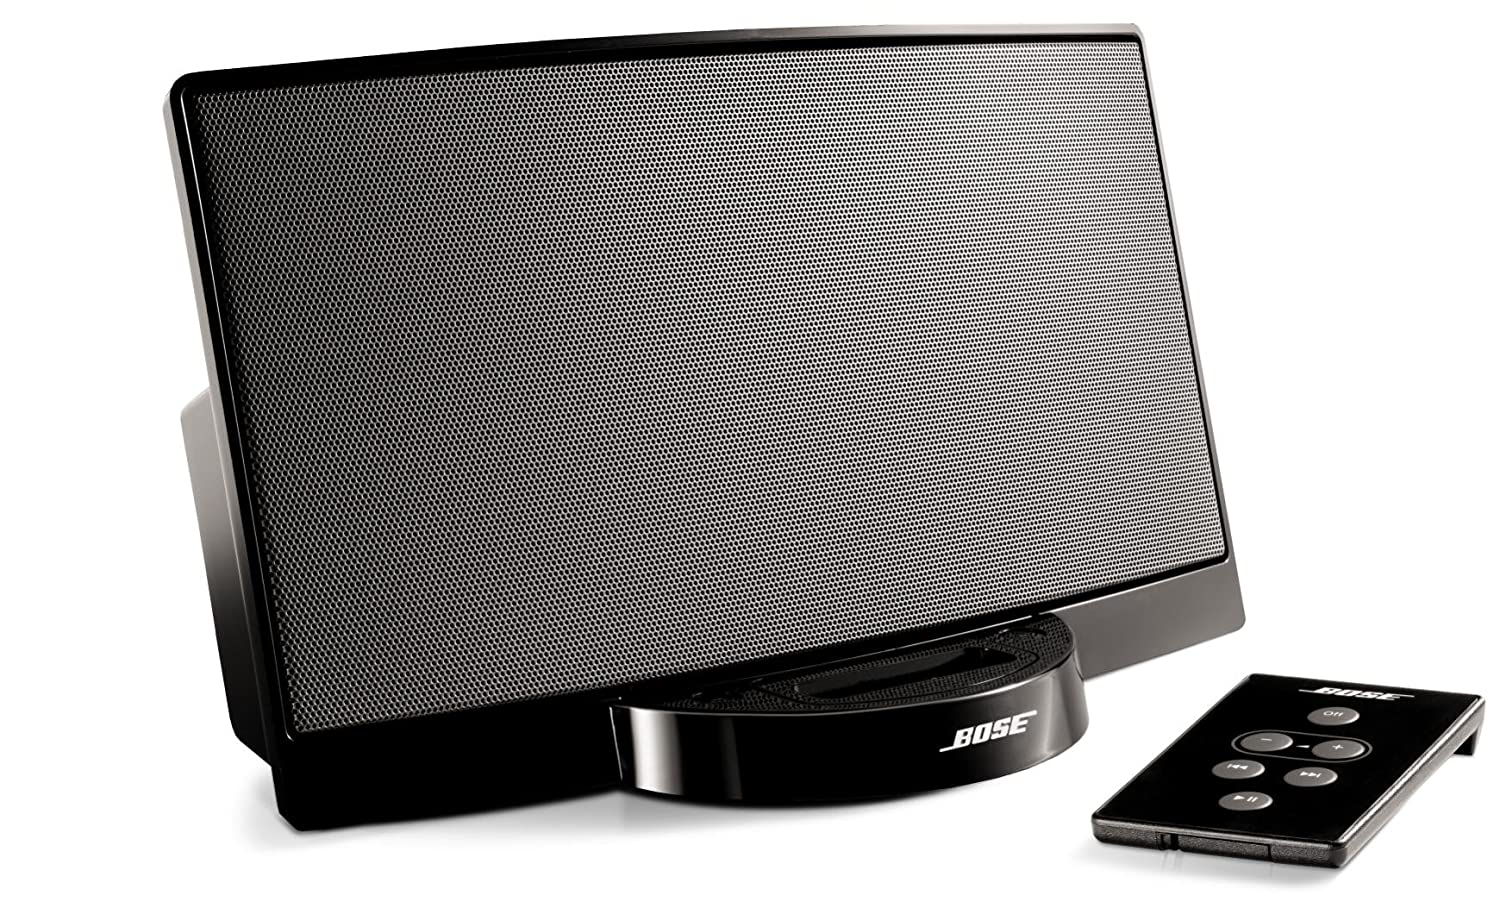 bose single women Women's luxury automatic  bose digital signal processing combines with volume-optimized eq and a proprietary acoustic design to make your  off a single .